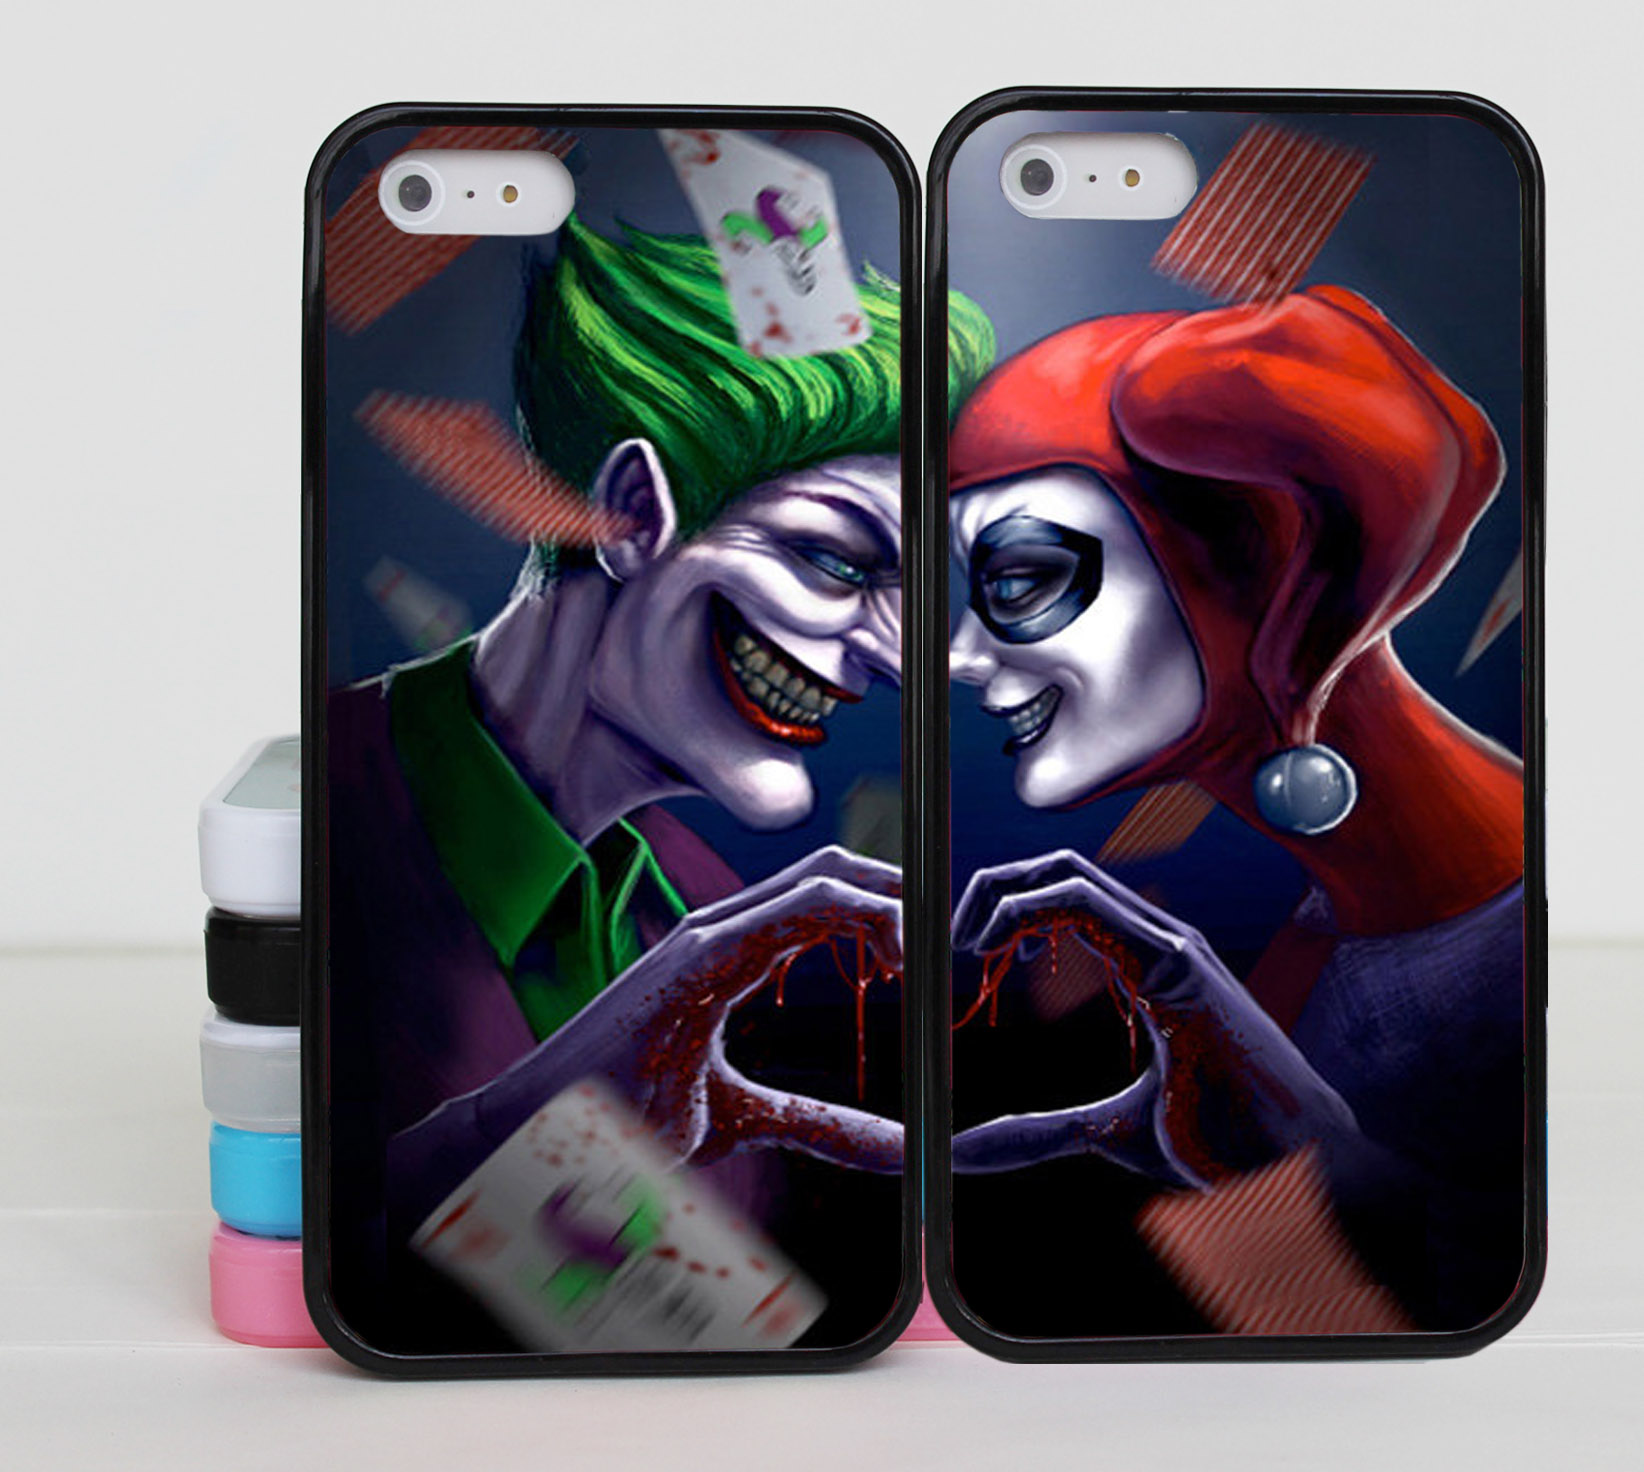 best friend phone case for iphone 6s plus 6s 6 plus 6 5s 5sold by fashion mobile phone cases